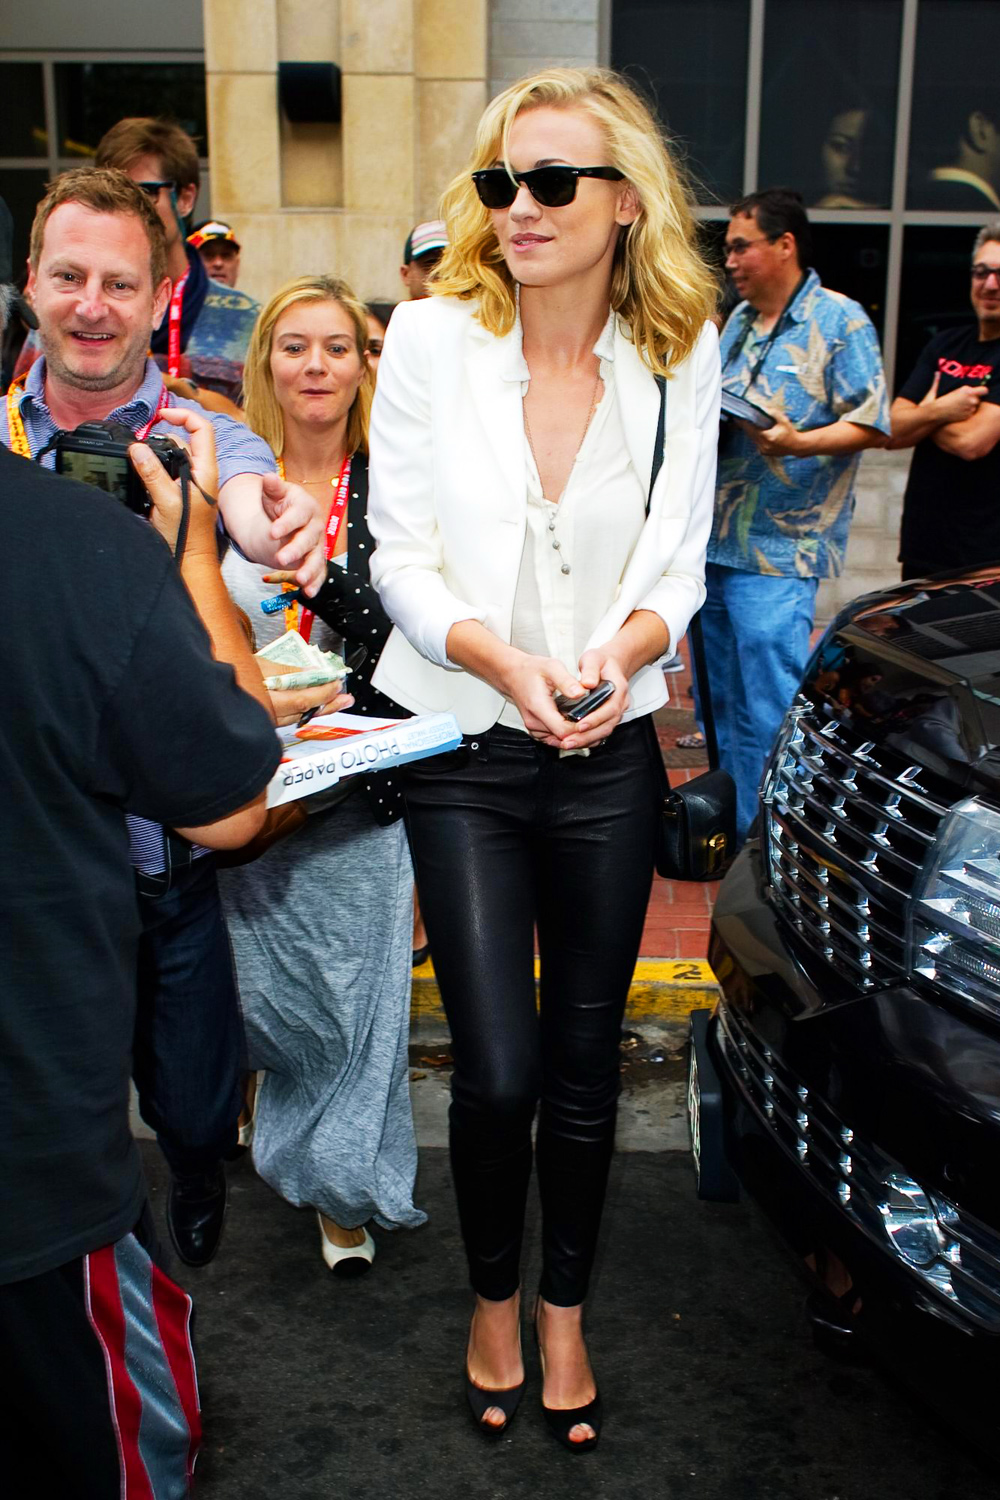 Yvonne Strahovski At 2012 Comic Con Appearance Leather